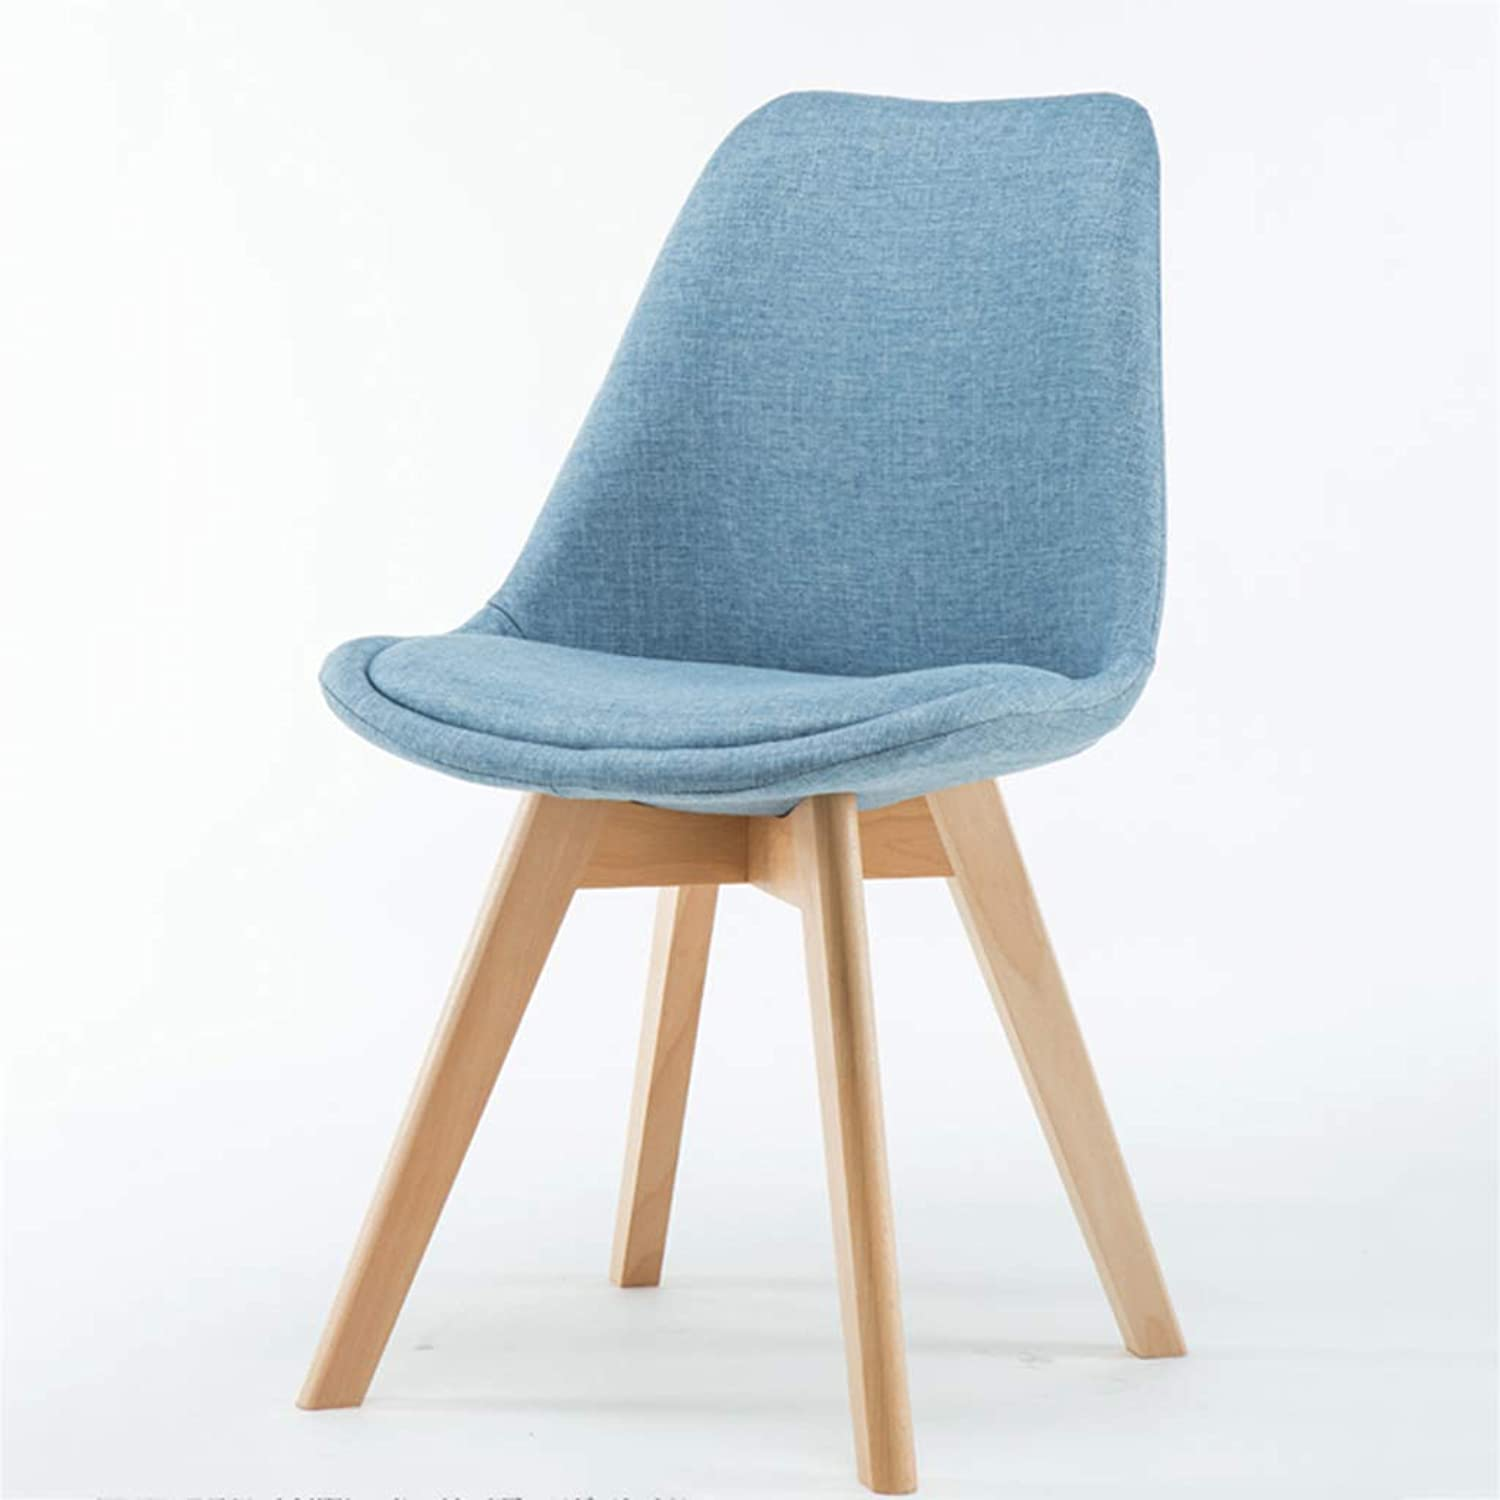 Chair Simple Fabric Chair Nordic Fabric Solid Wood Dining Chair Coffee Hotel Conference Negotiation Chair Household Stool Dining Chair Size  83  40cm,Pink